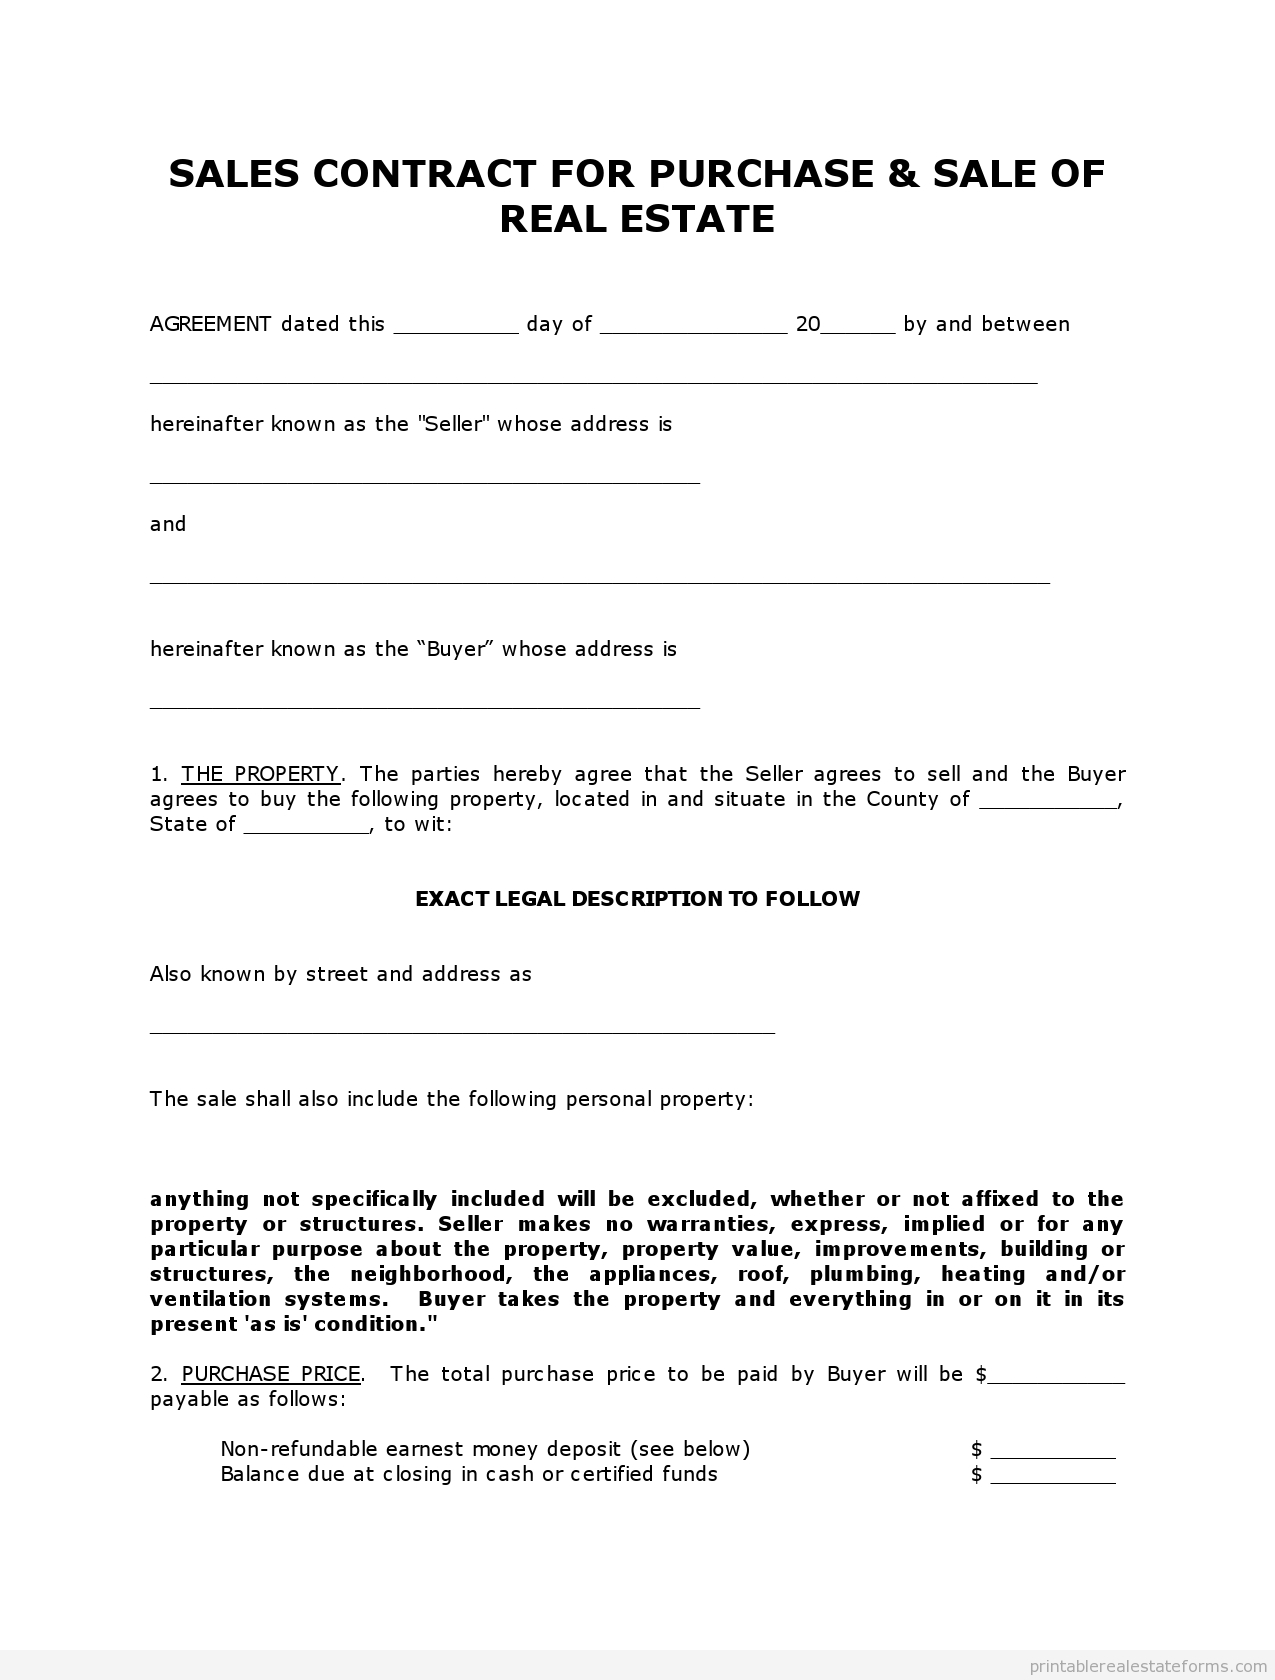 Free Printable Land Contract Forms (Word File) - Free Printable Land Contract Forms